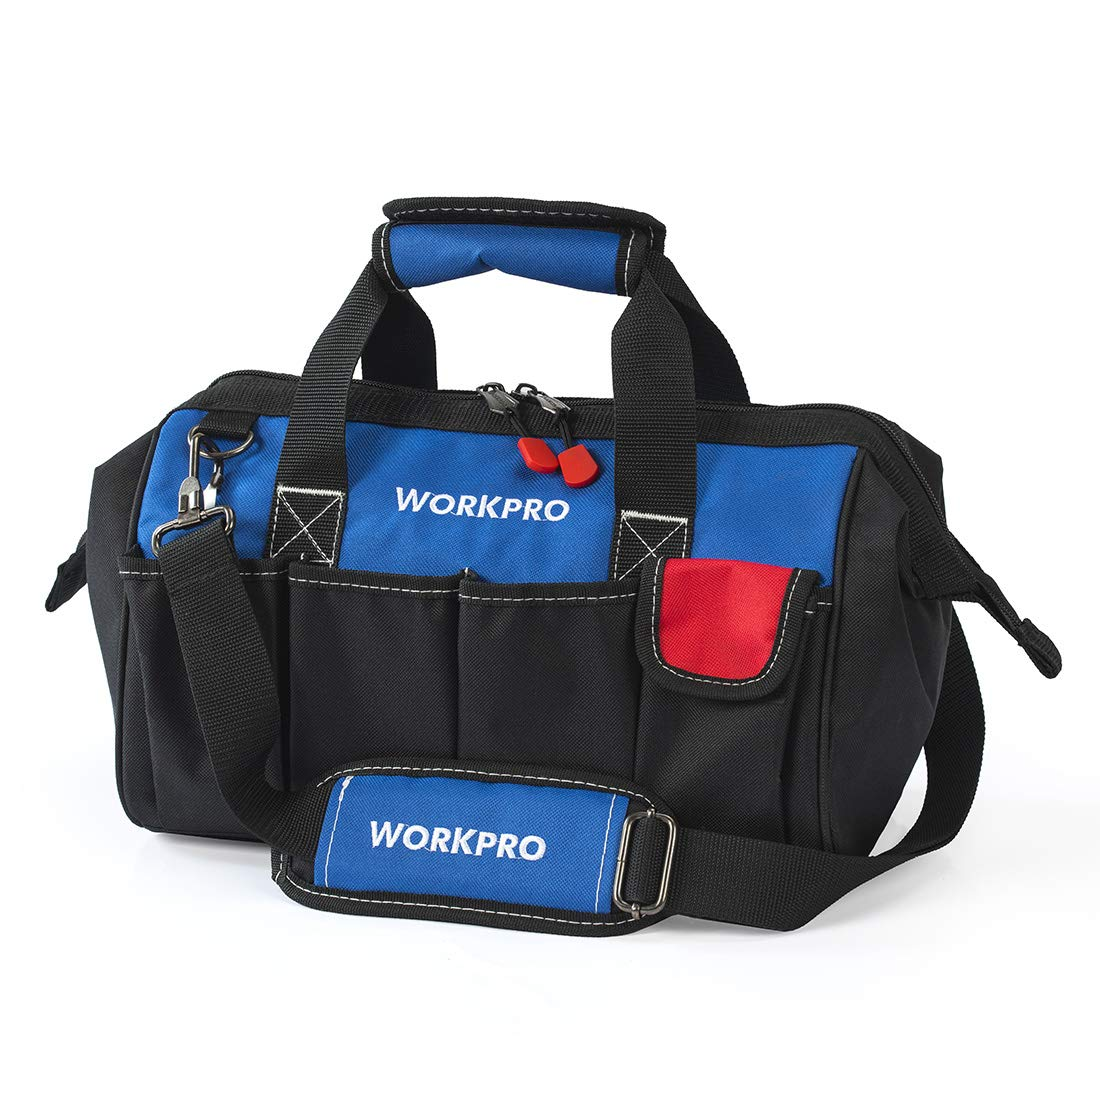 WORKPRO 14-inch Tool Bag, Multi-pocket Tool Organizer with Adjustable Shoulder Strap by WORKPRO